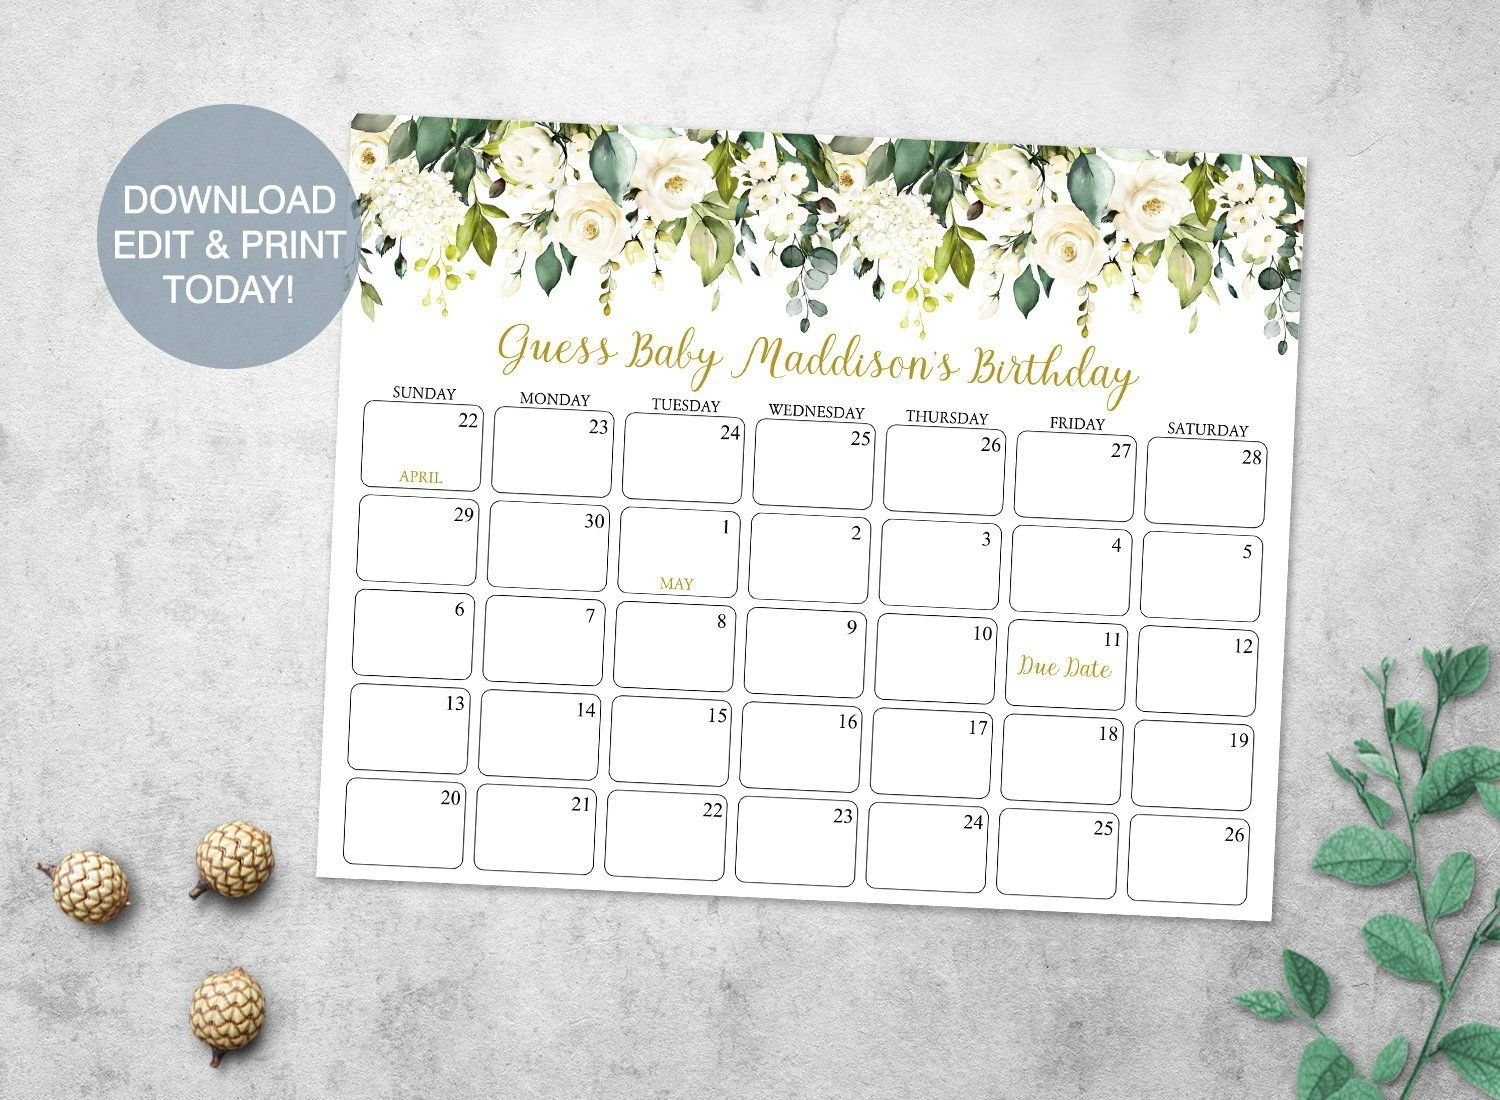 Greenery Baby Due Date Prediction Calendar Printable, White Calendar For Guessing Baby Due Date